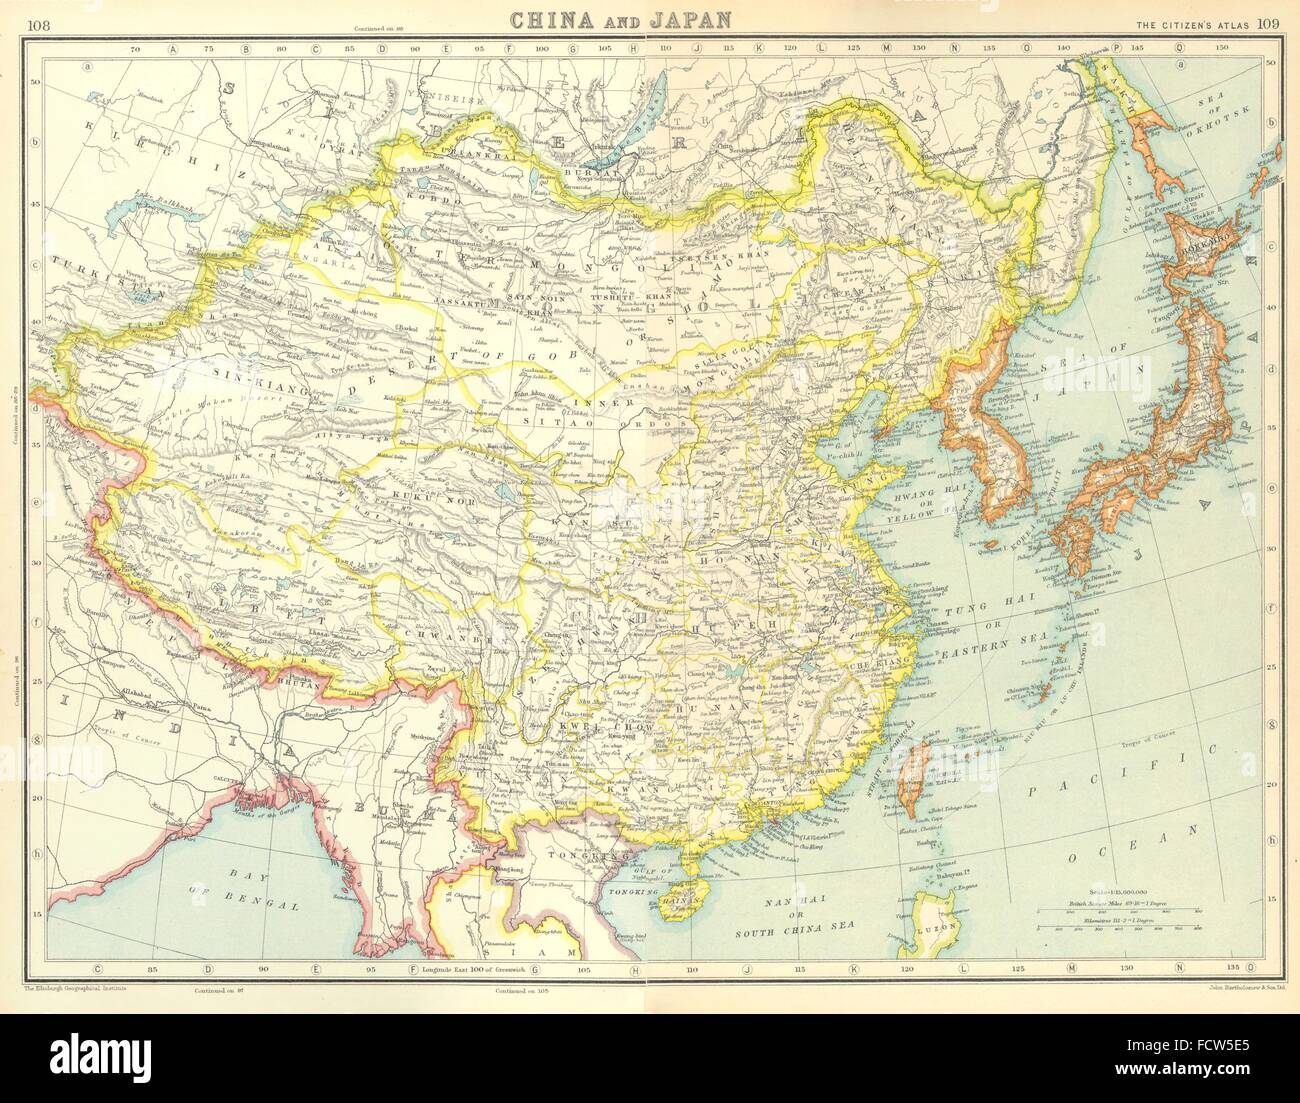 East asia china japan japanese occupied korea formosa taiwan east asia china japan japanese occupied korea formosa taiwan 1924 old map gumiabroncs Image collections